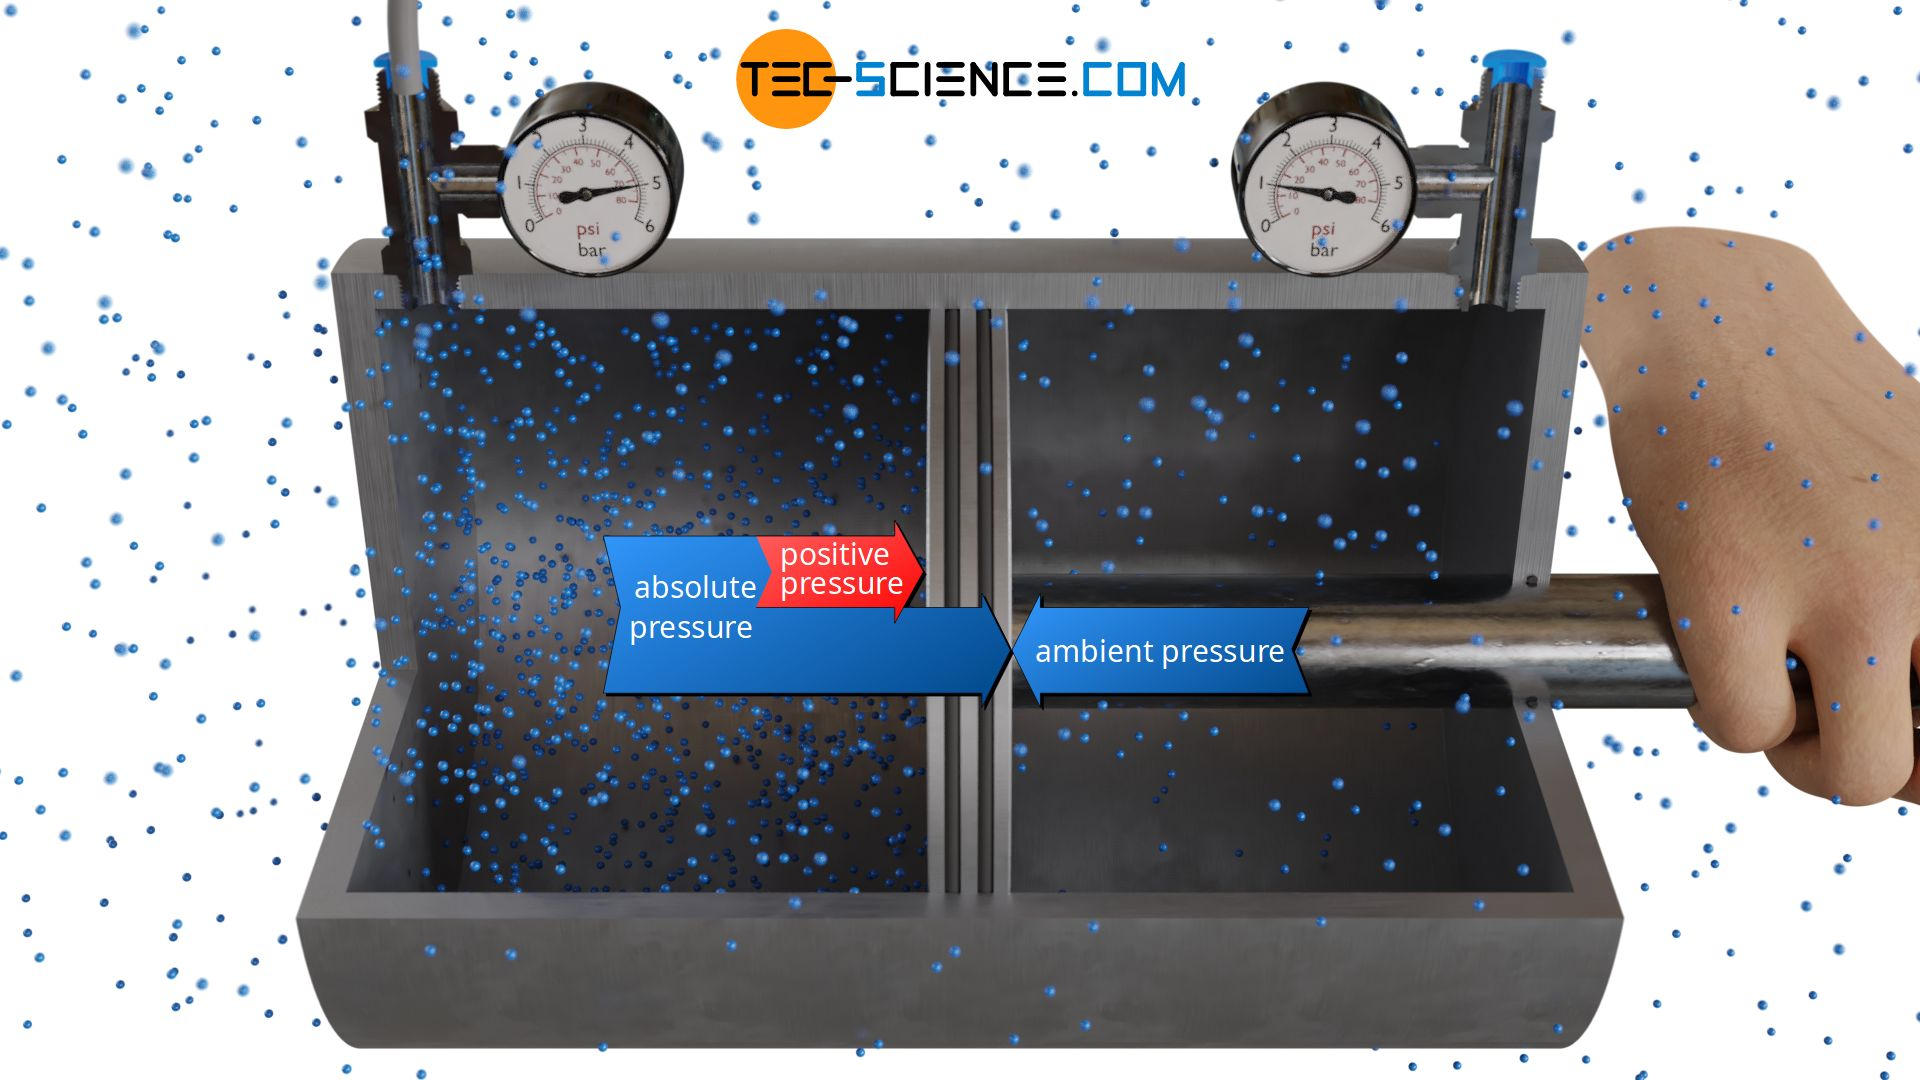 Relationship between positive pressure and absolute pressure